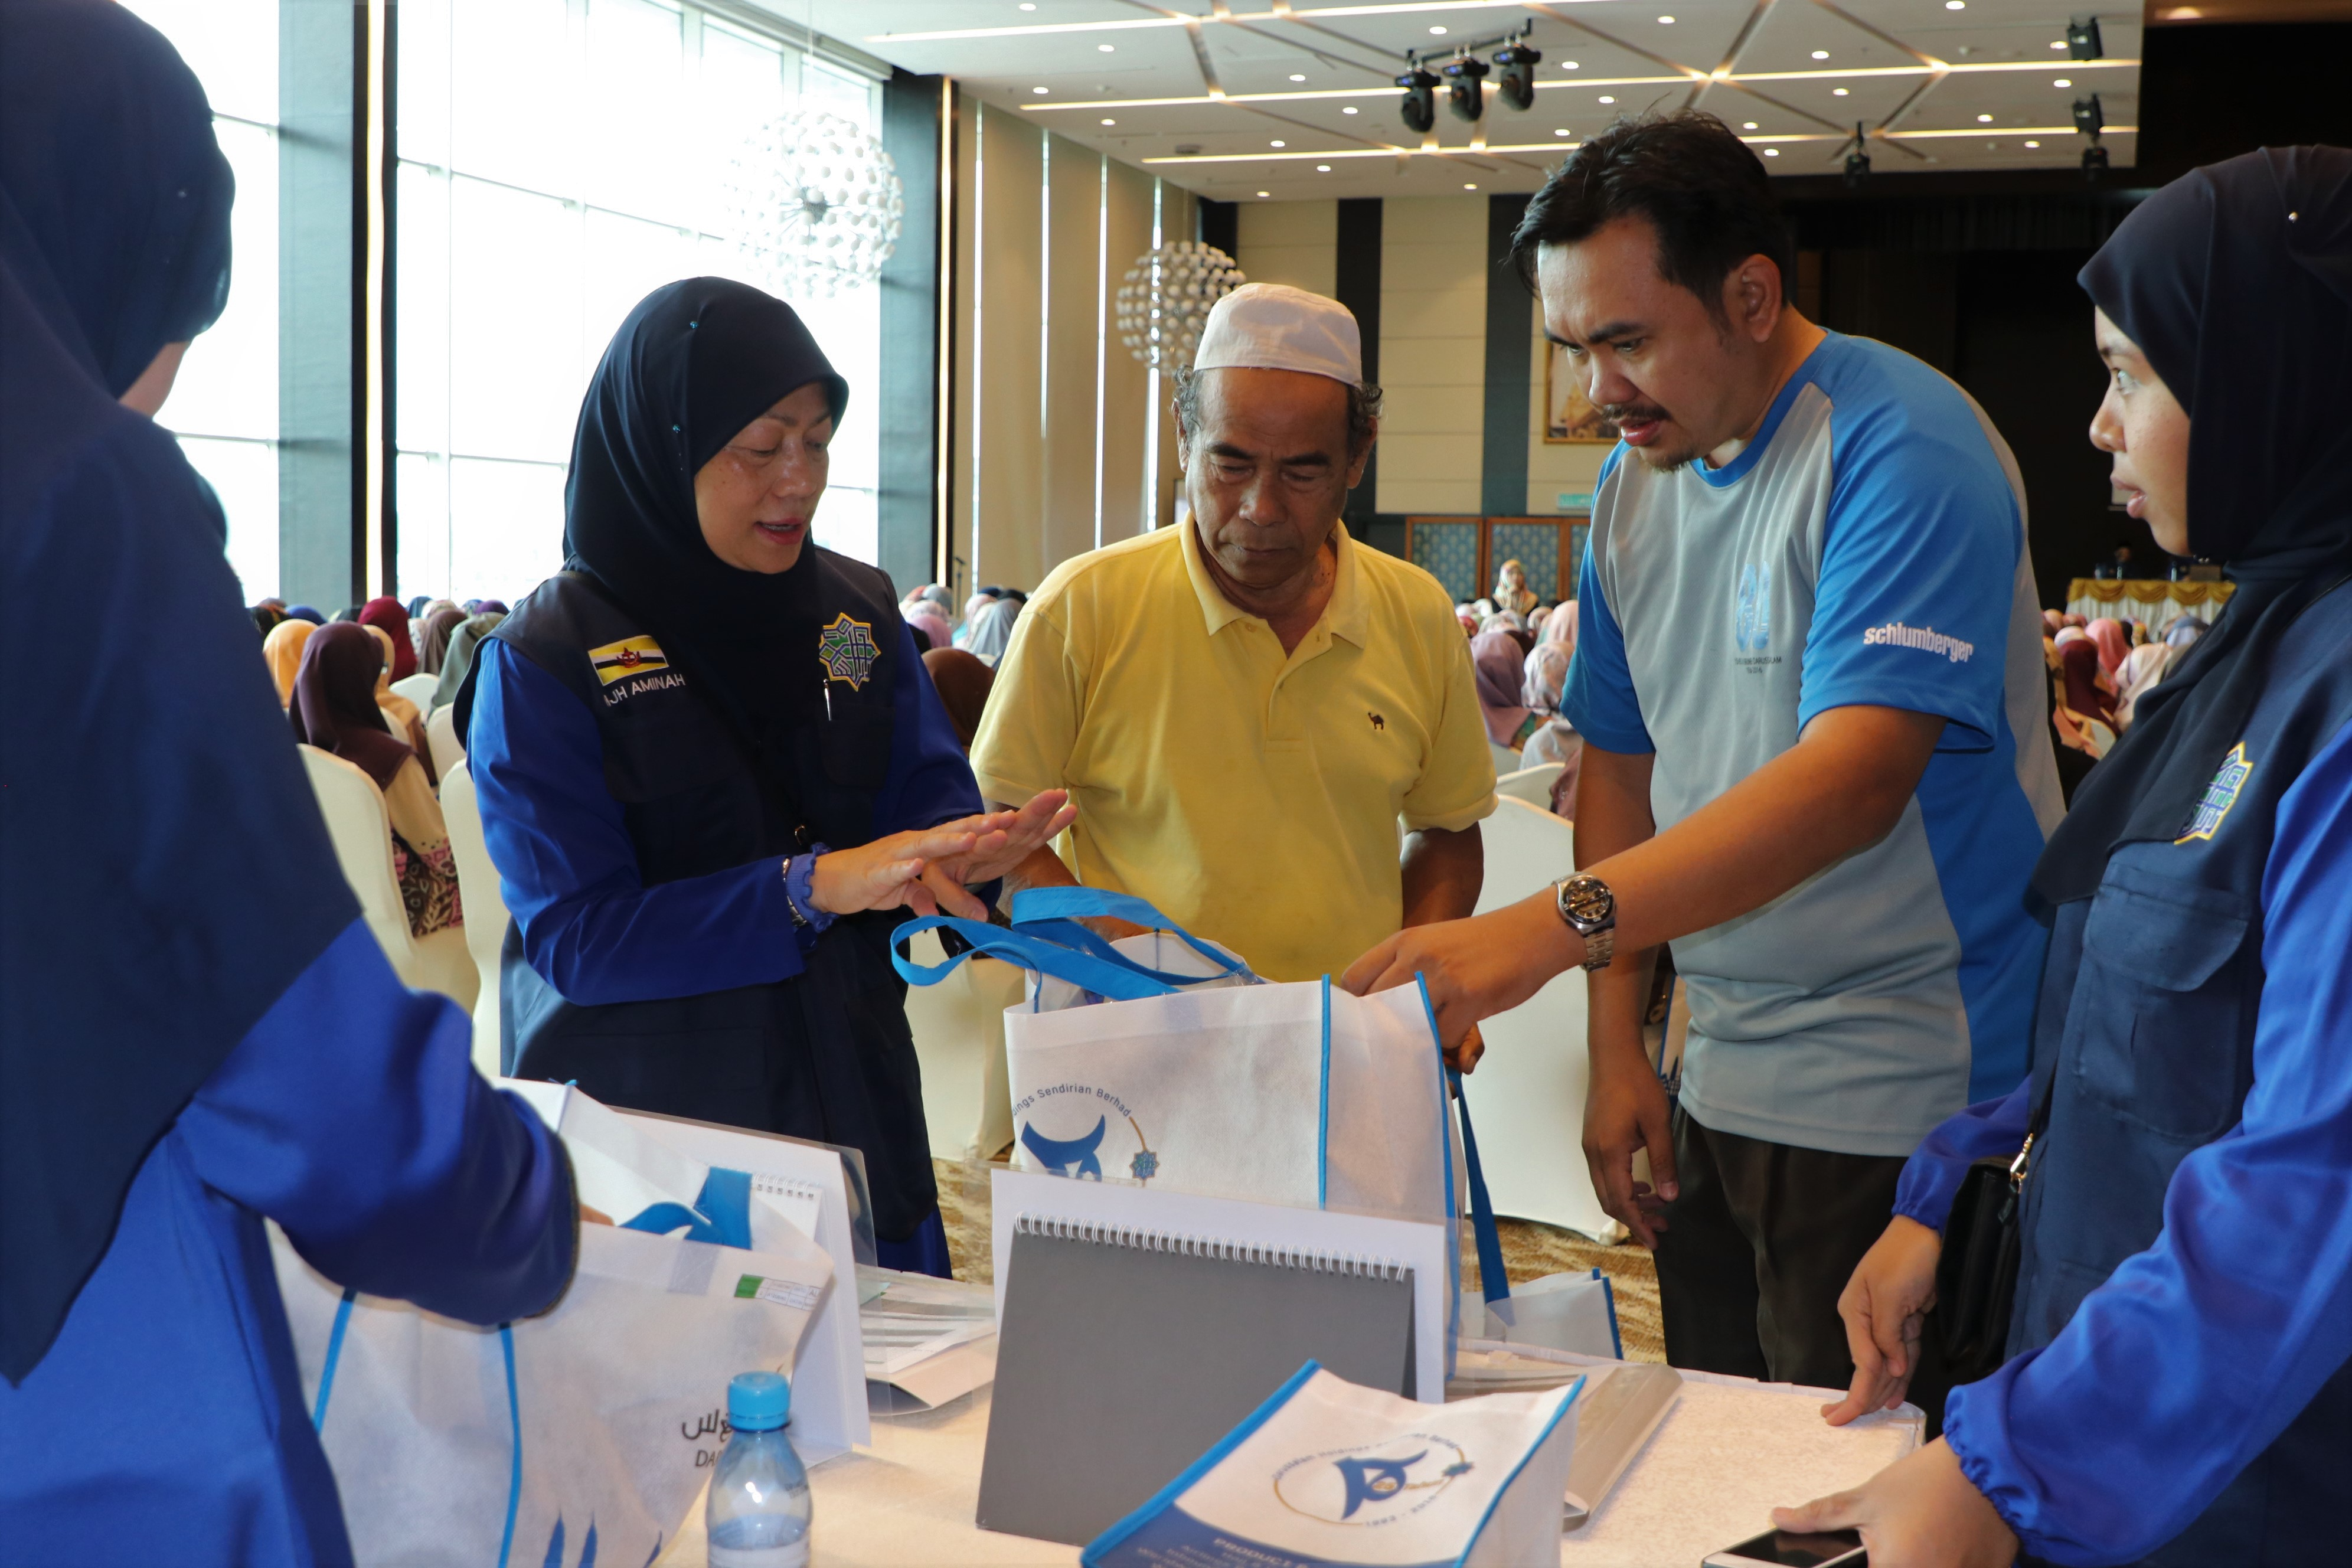 Darussalam Holdings prioritises safety, comfort of Haj pilgrims with